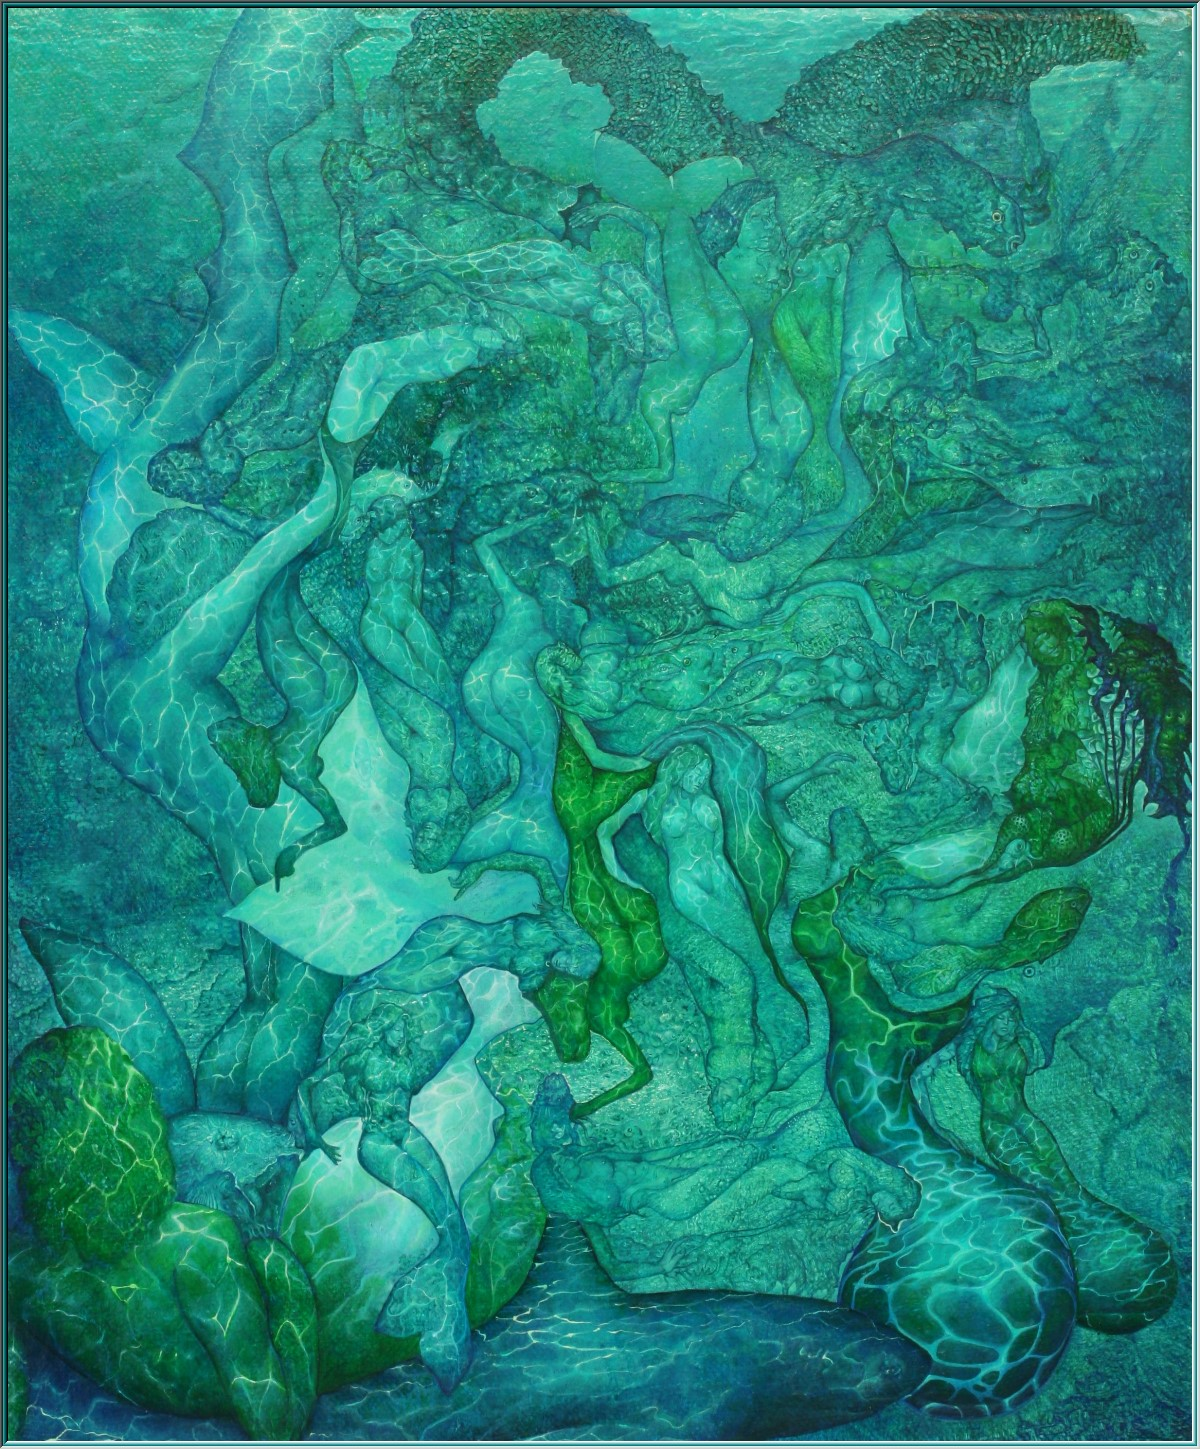 Undine, water spirits, Arielle The Little Mermaid, liber de nymphis, manatees, mermaids, nymphs, sirens, horn of miracles